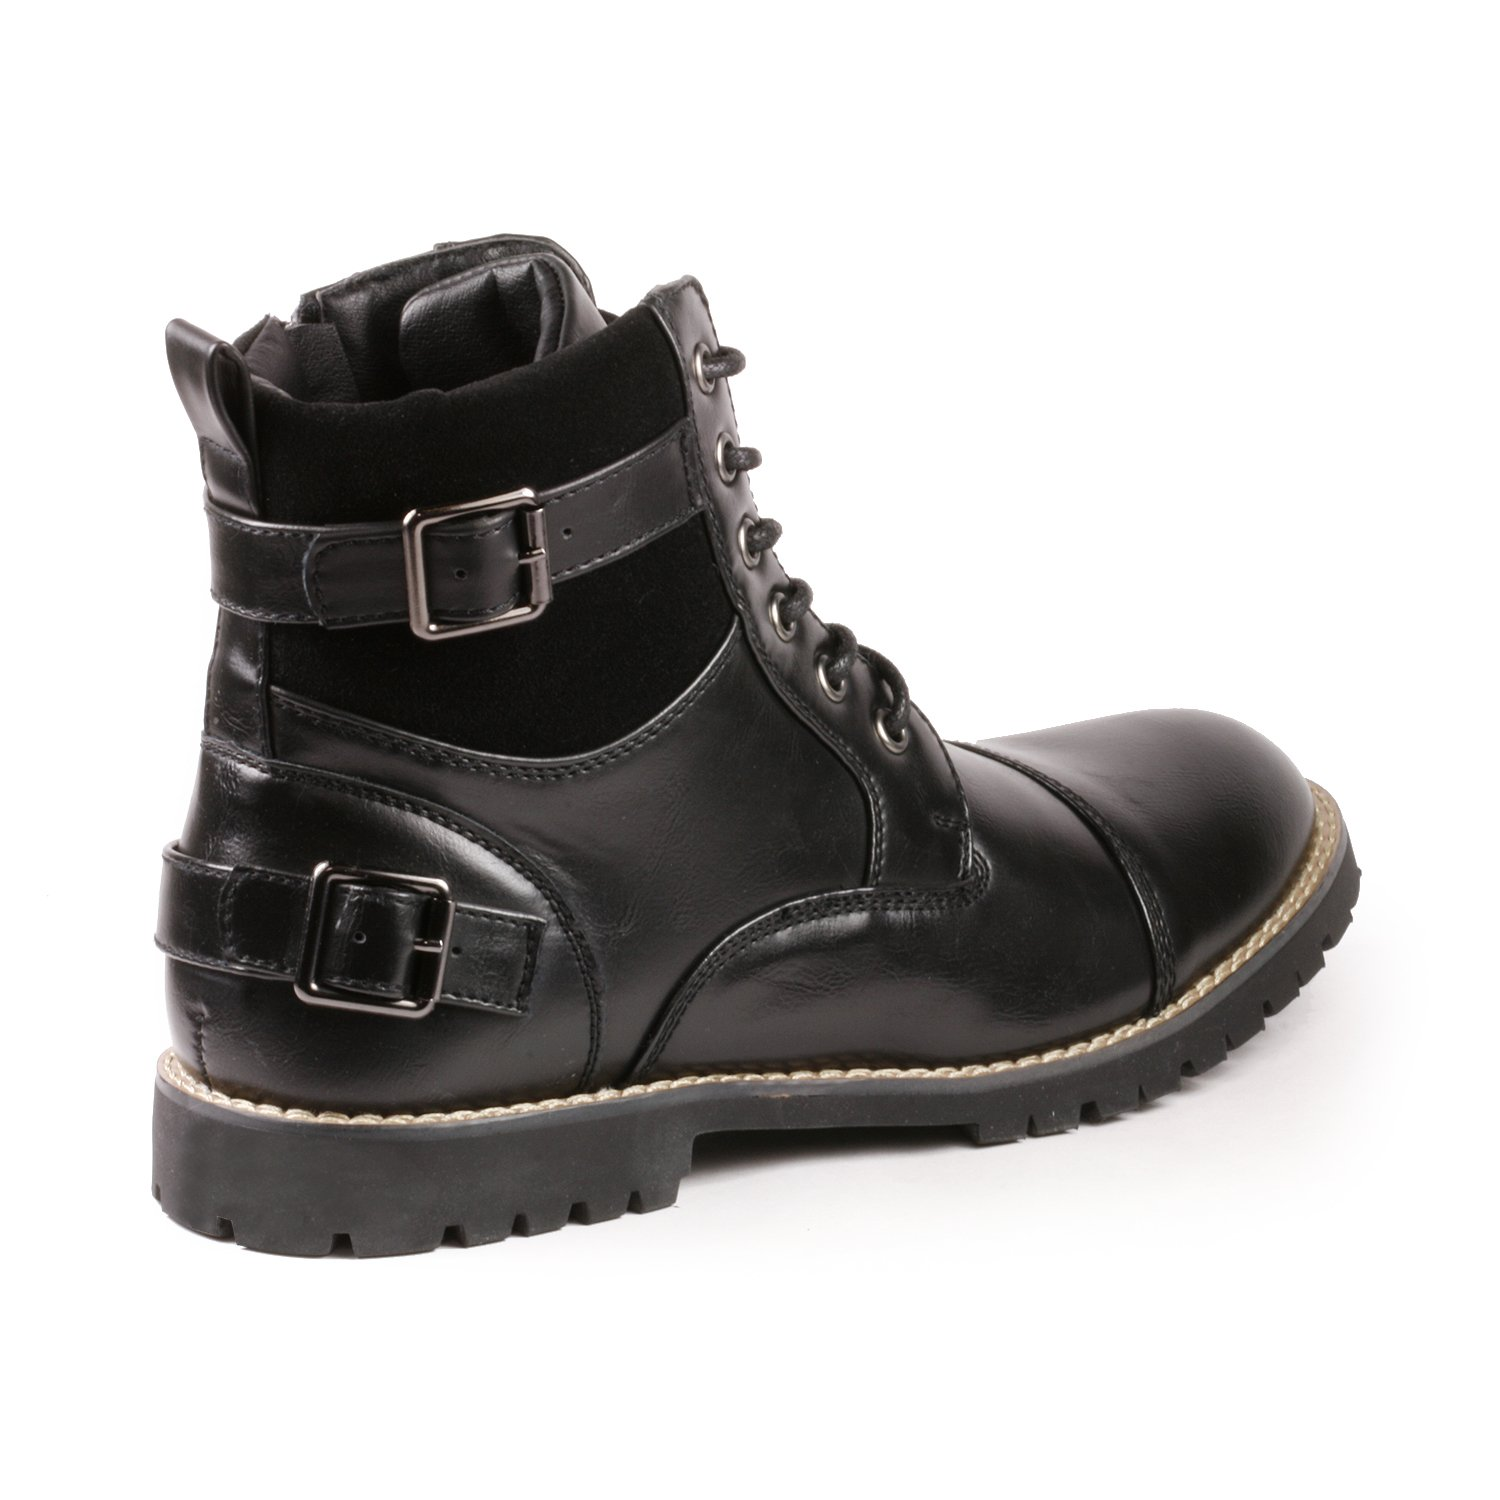 Metrocharm MC306 Mens Casual Work Lace Up Classic Motorcycle Combat Boots